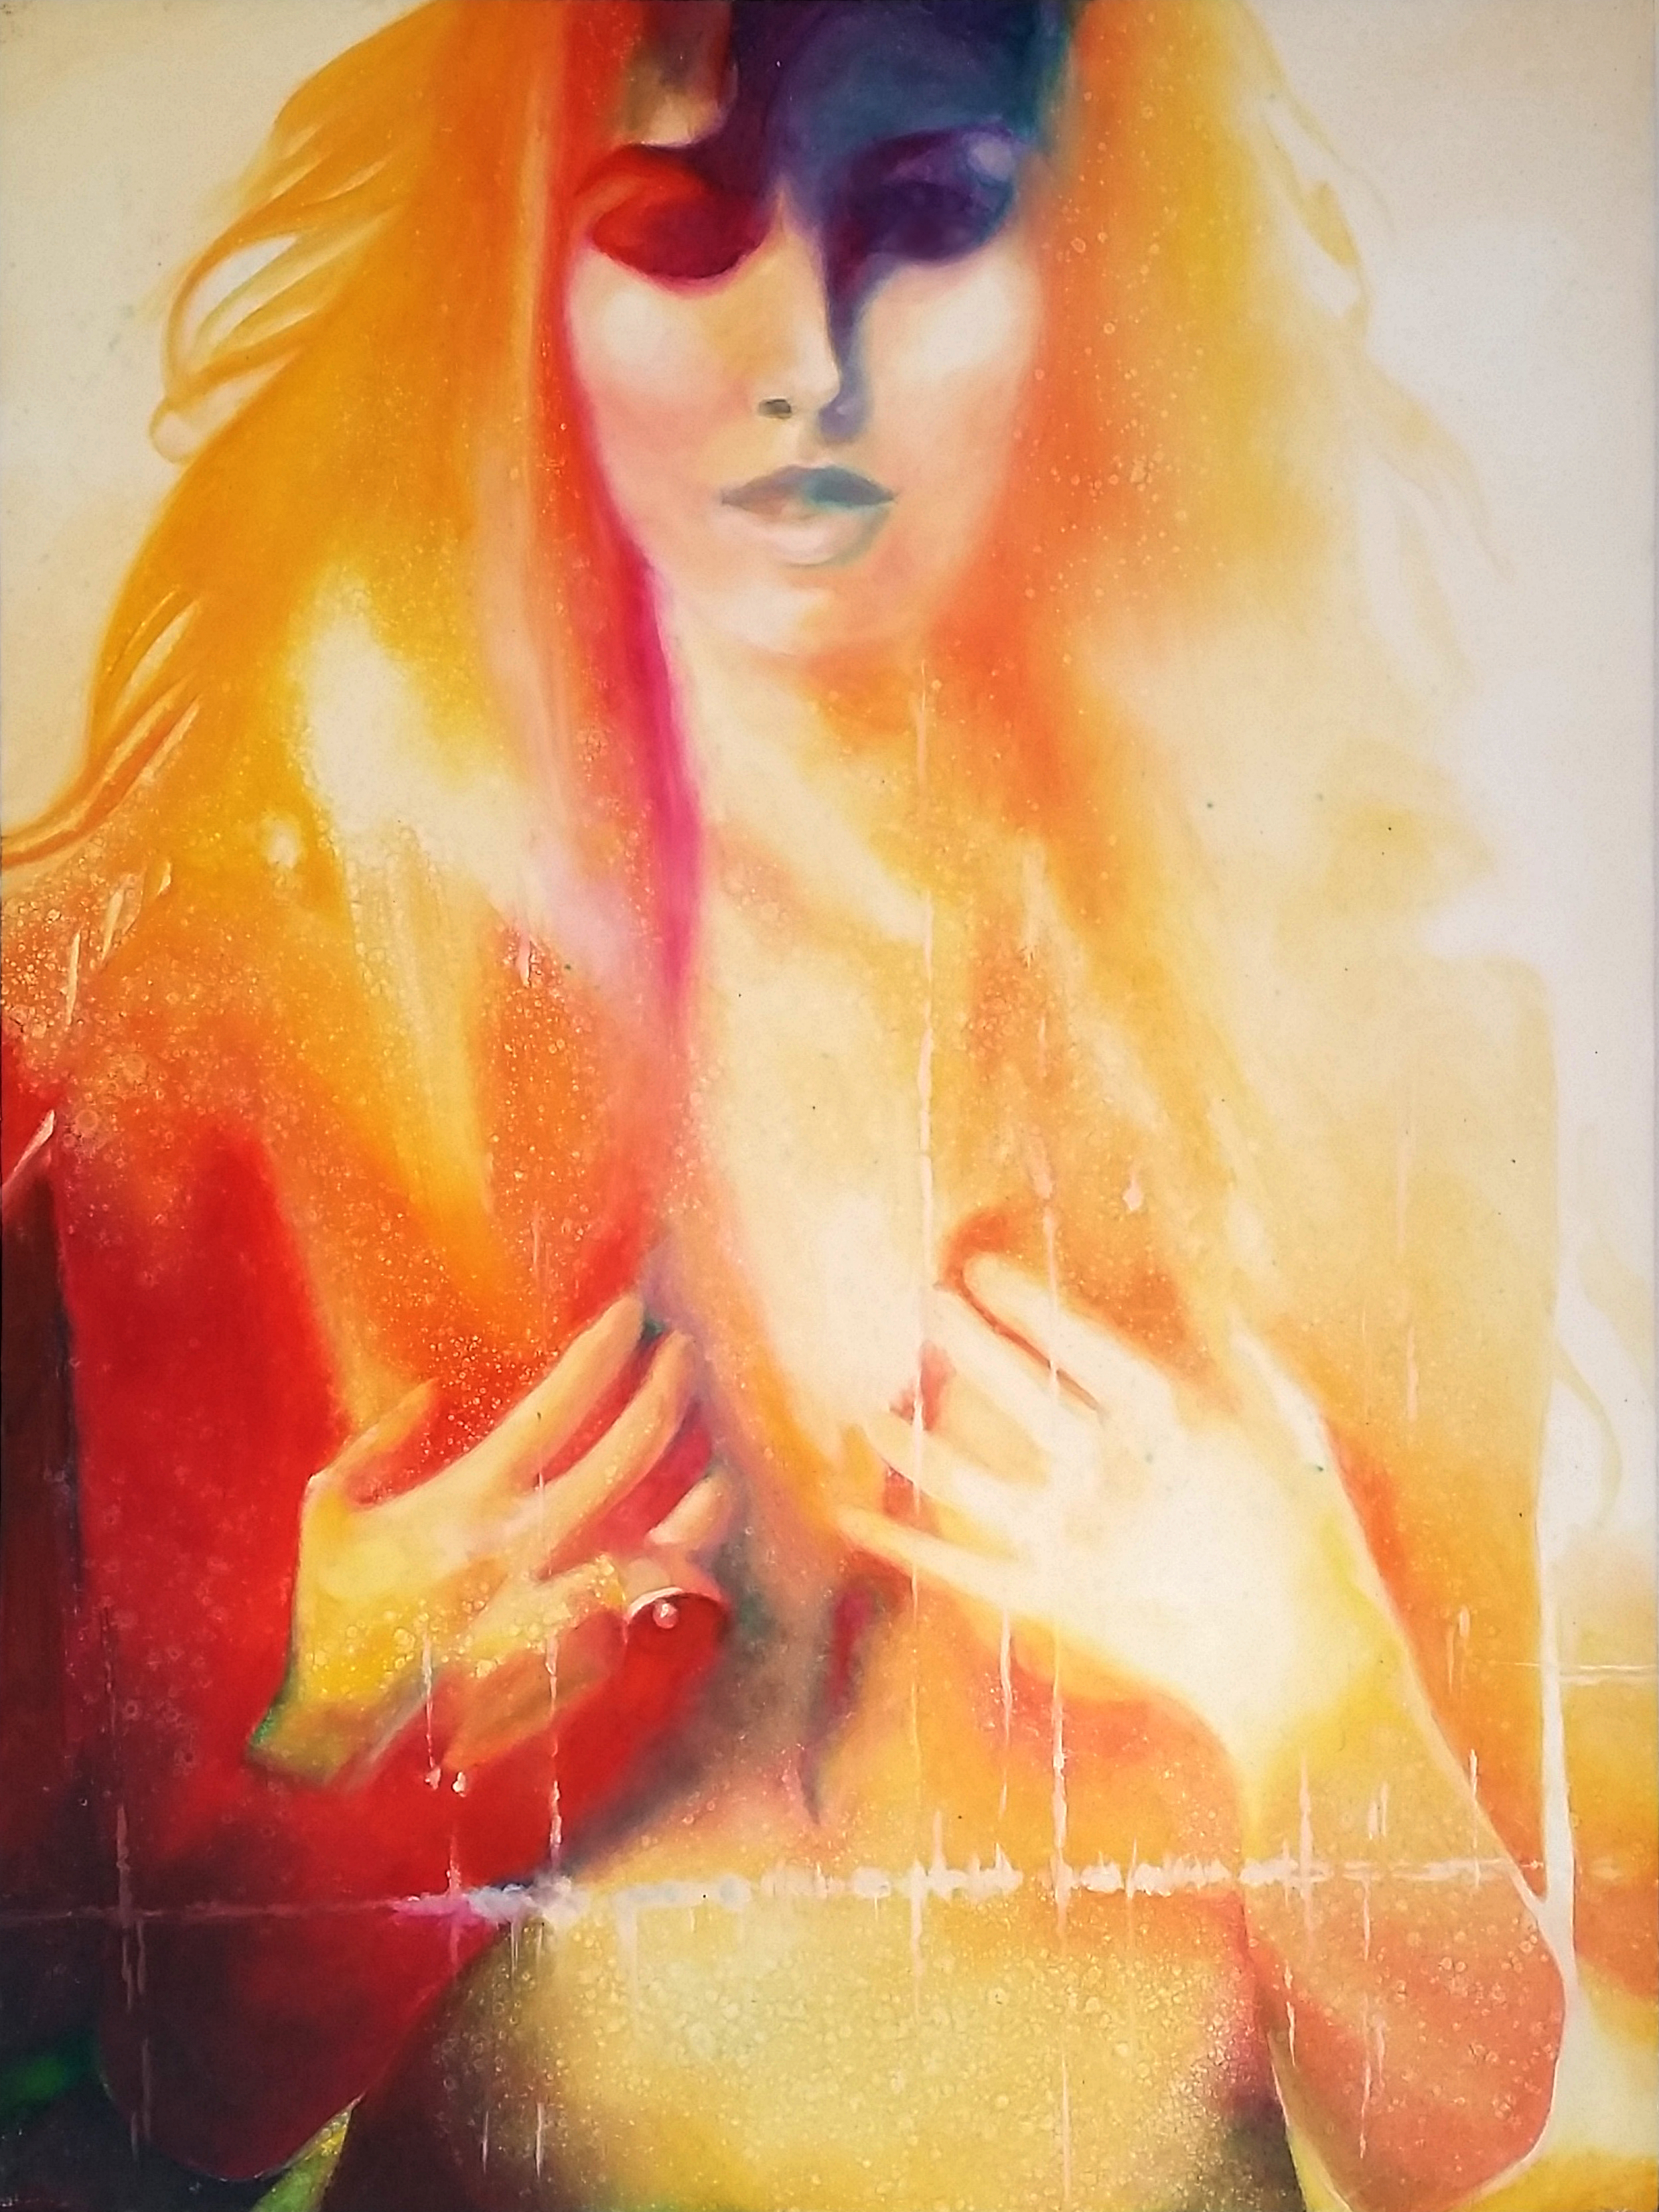 """""""See Me... Feel Me...Touch Me..."""", 2014, Ginger Del Rey  oil on gesso board 24"""" x 18"""" x 1""""  $1500  I love how completely unhidden this woman is. She's fearless. Confident. Demanding to be seen, touched, opened, filled....she's resplendent in her fiery aura. To touch her is to feel ecstasy and pure light. I named after a lyric from one of my favorite songs by The Who."""